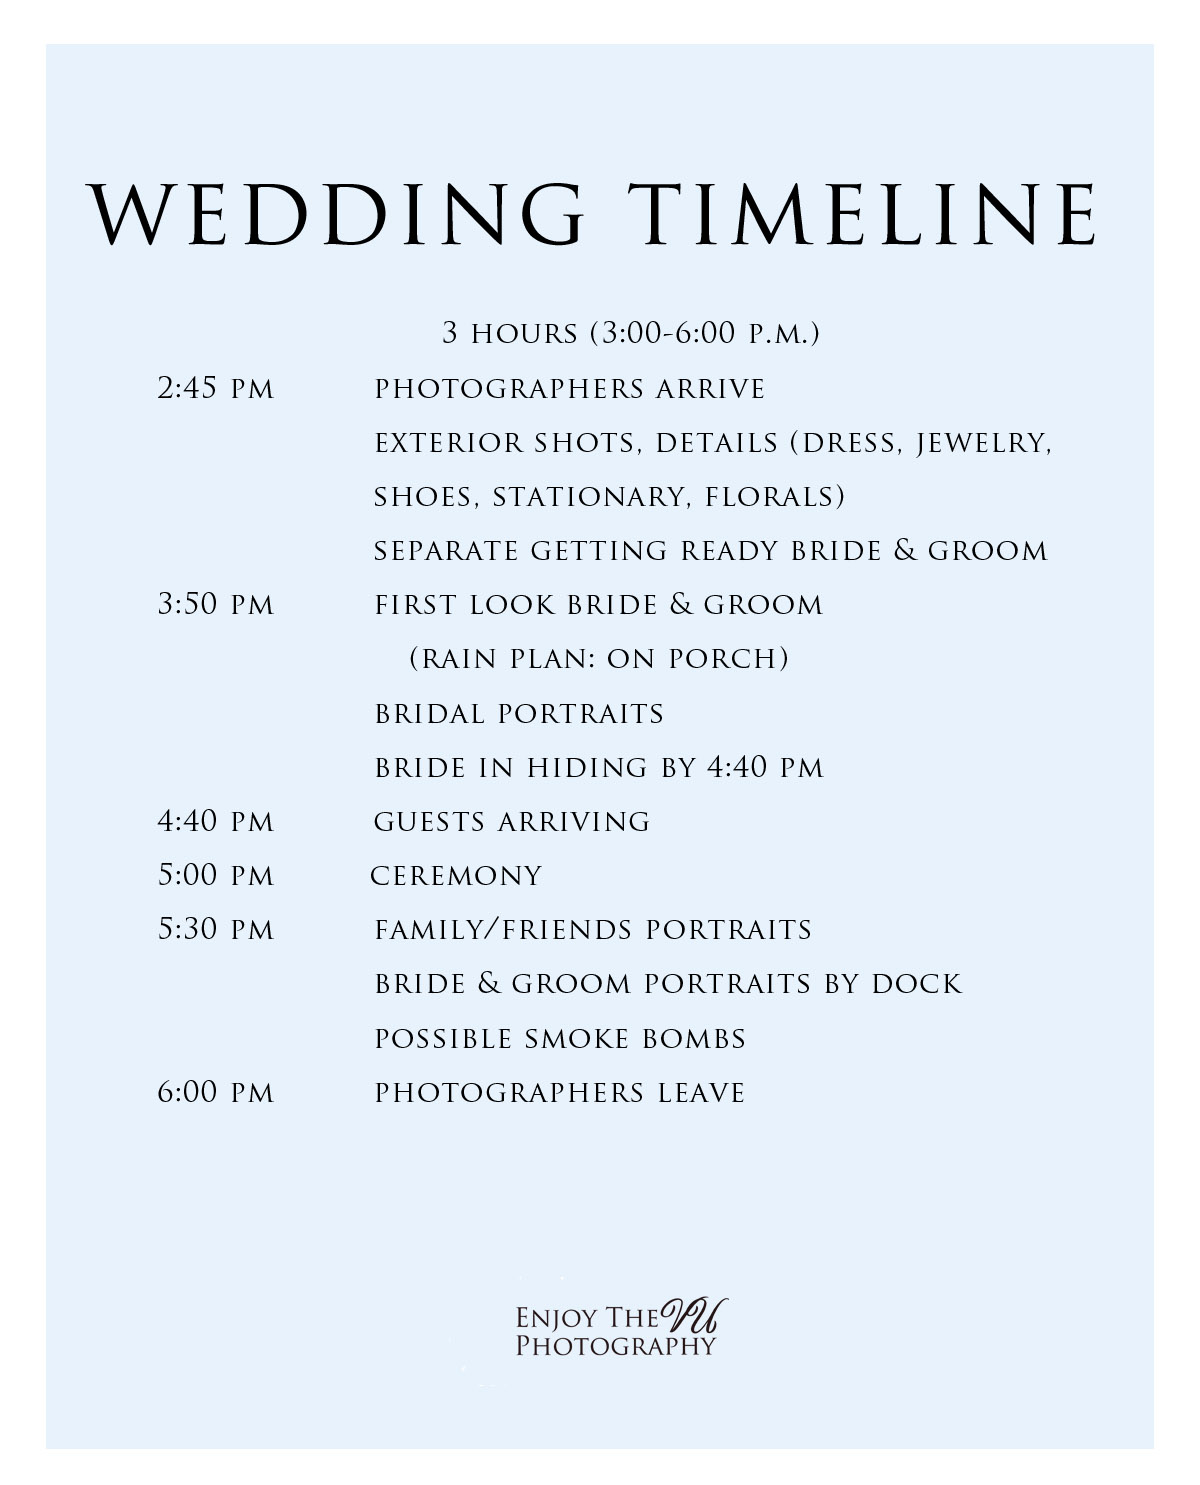 sample upper peninsula wedding timeline 3 hour micro wedding